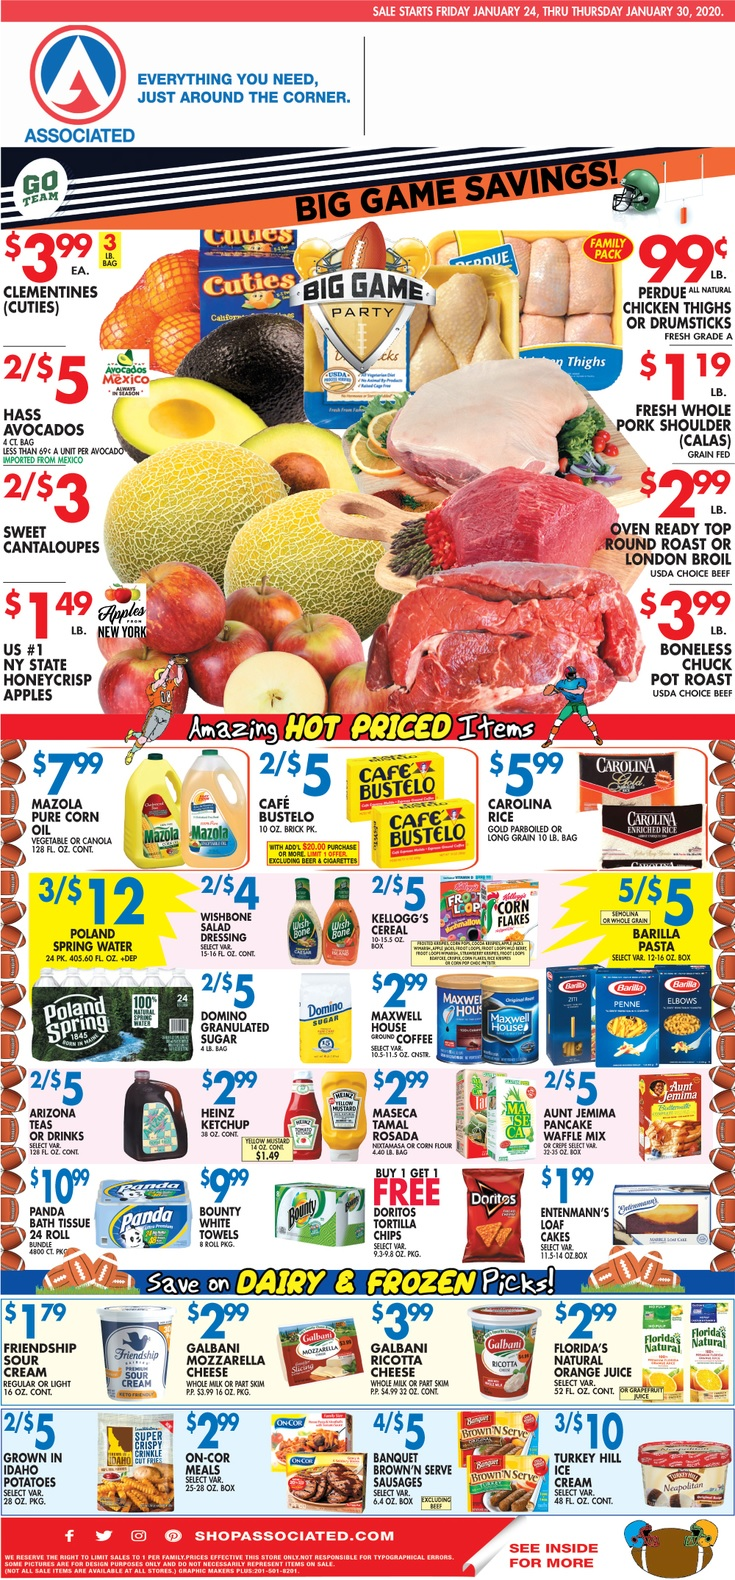 ⭐ Associated Supermarkets Ad 2/28/20 ⭐ Associated Supermarkets Circular February 28 2020